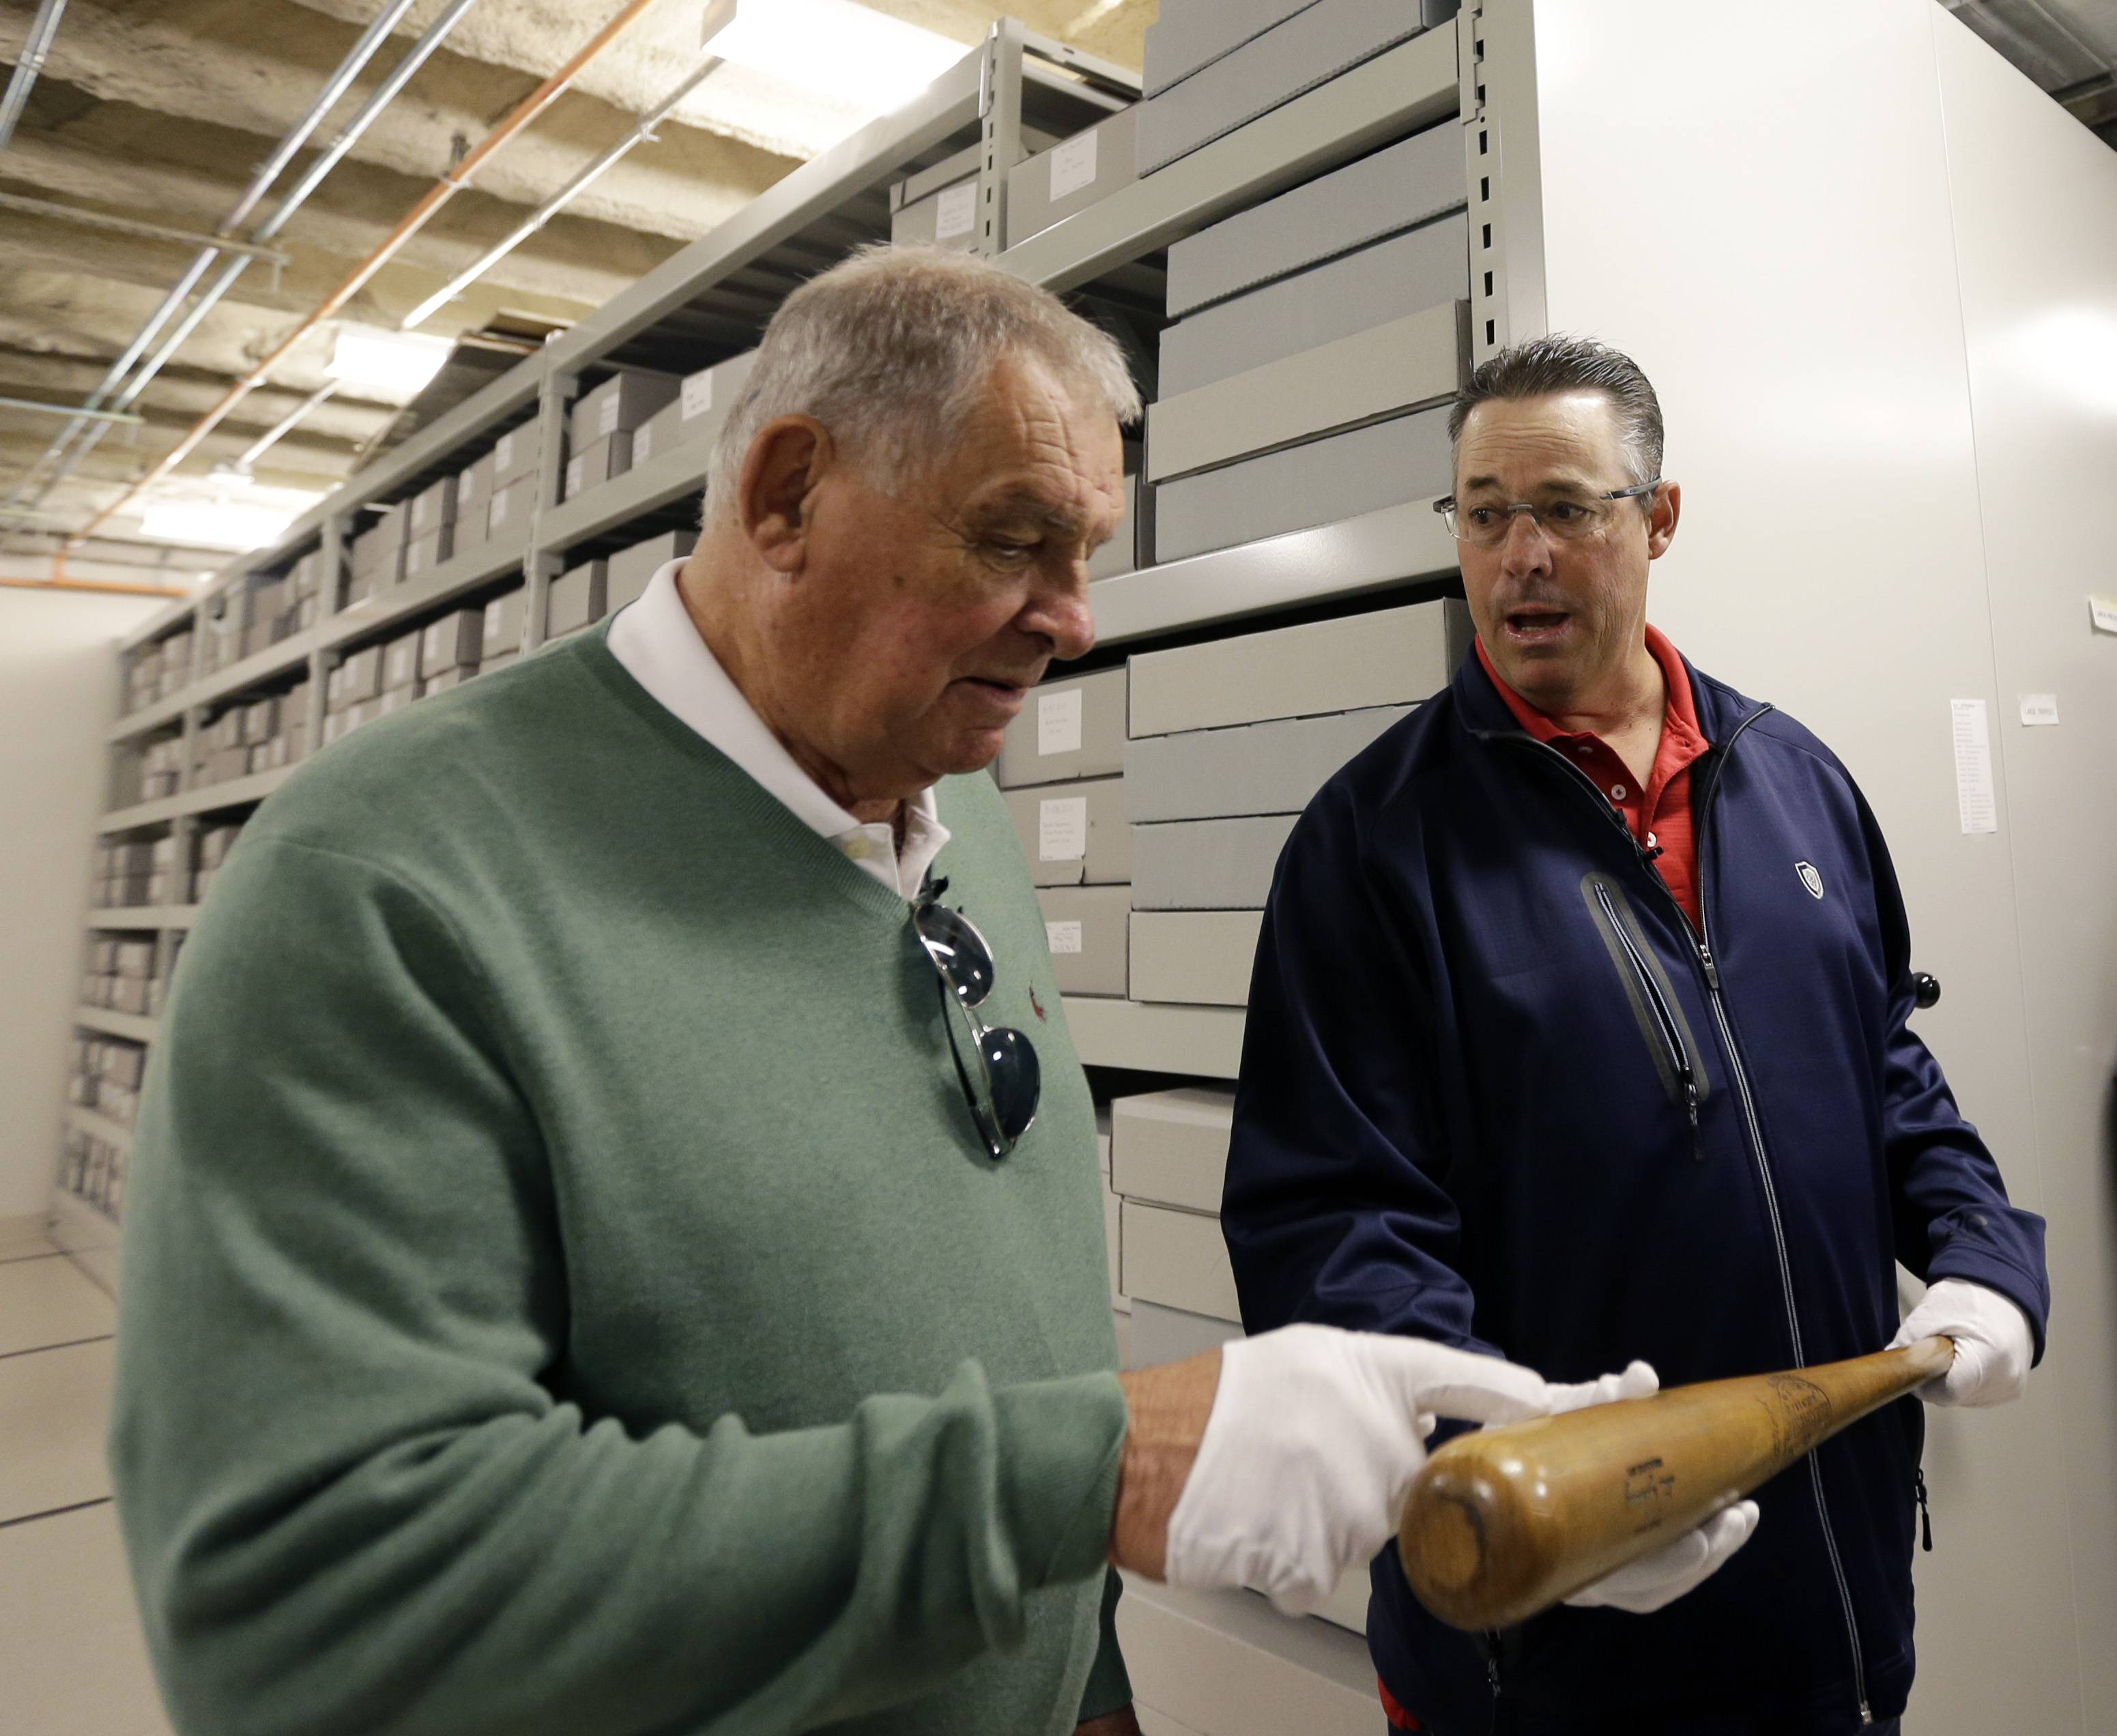 Bobby Cox and Greg Maddux, together again